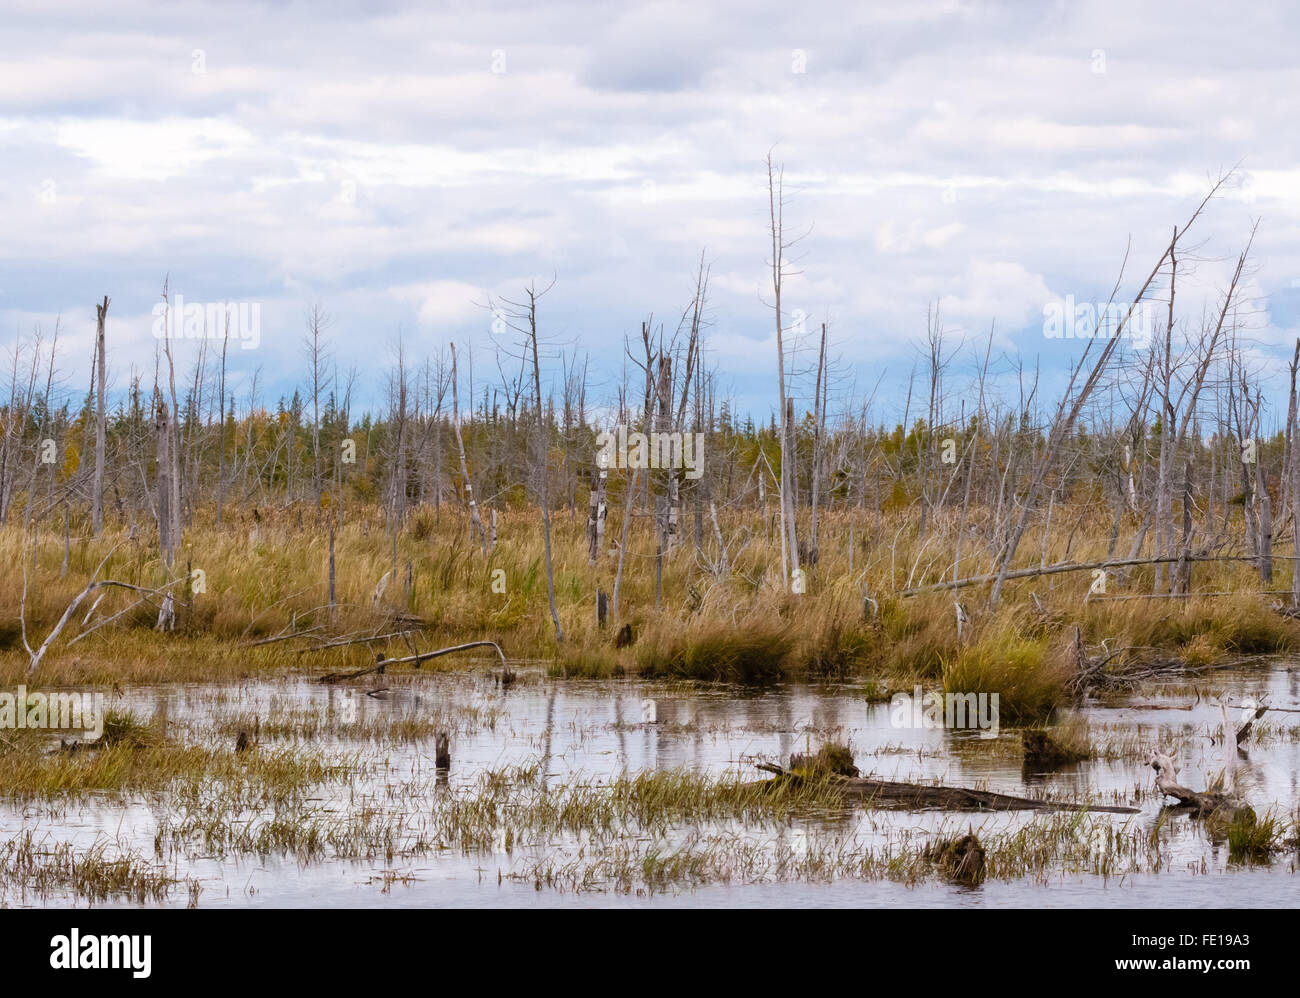 Decayed dead dry trees  and stumps in swamp against cloudy sky and forest in distance. Stock Photo